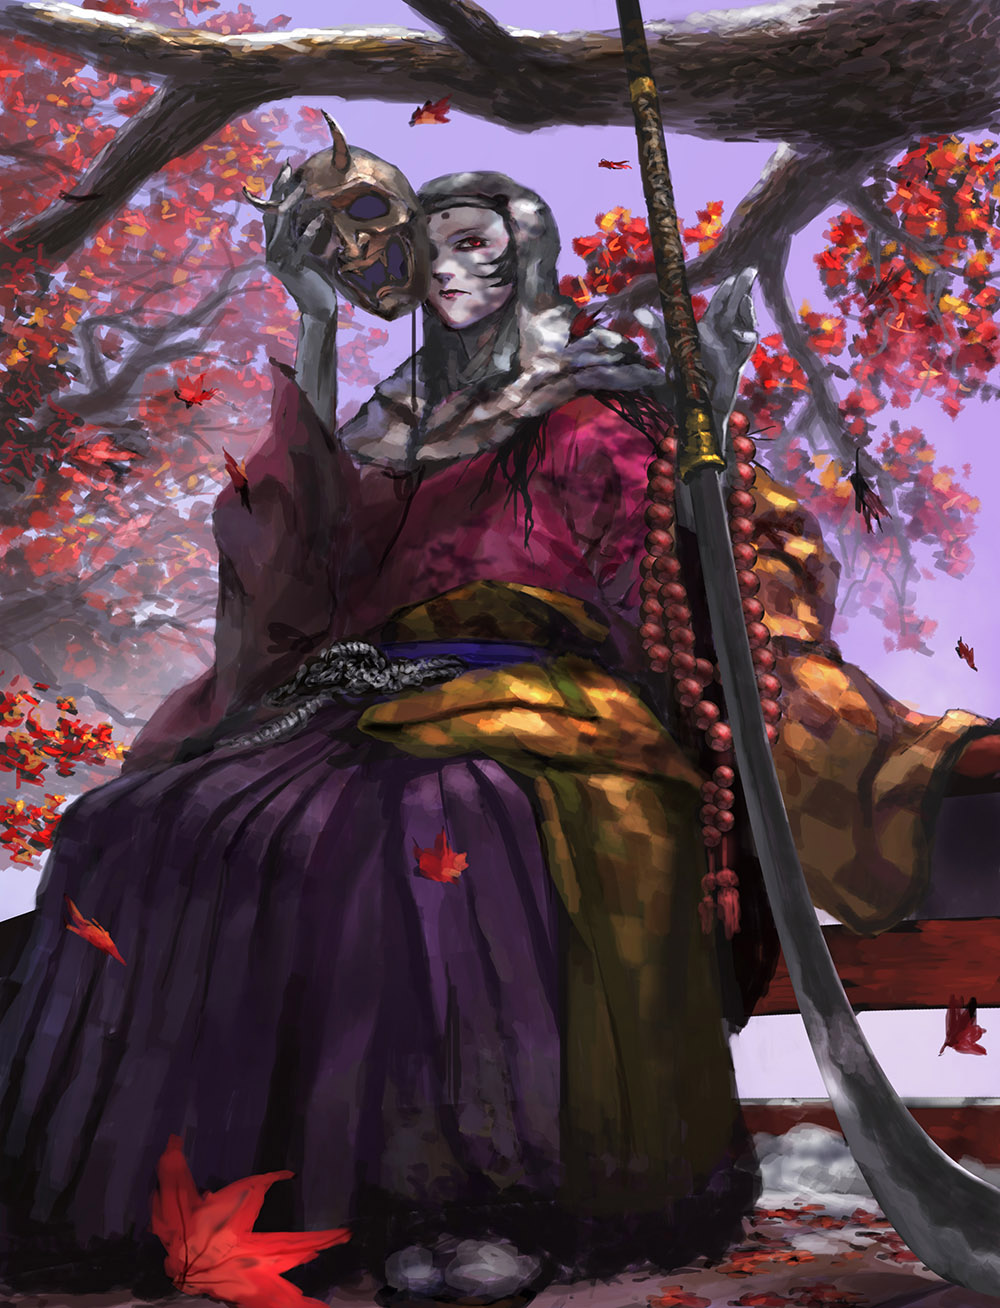 1girl chuno_(akiaji81) closed_mouth corrupted_monk hakama highres holding holding_sword holding_weapon japanese_clothes leaf long_sleeves looking_at_viewer maple_leaf mask oni_mask pale_skin planted_sword planted_weapon purple_hakama red_eyes sekiro:_shadows_die_twice sitting solo sword tabi tree uchigatana weapon wide_sleeves